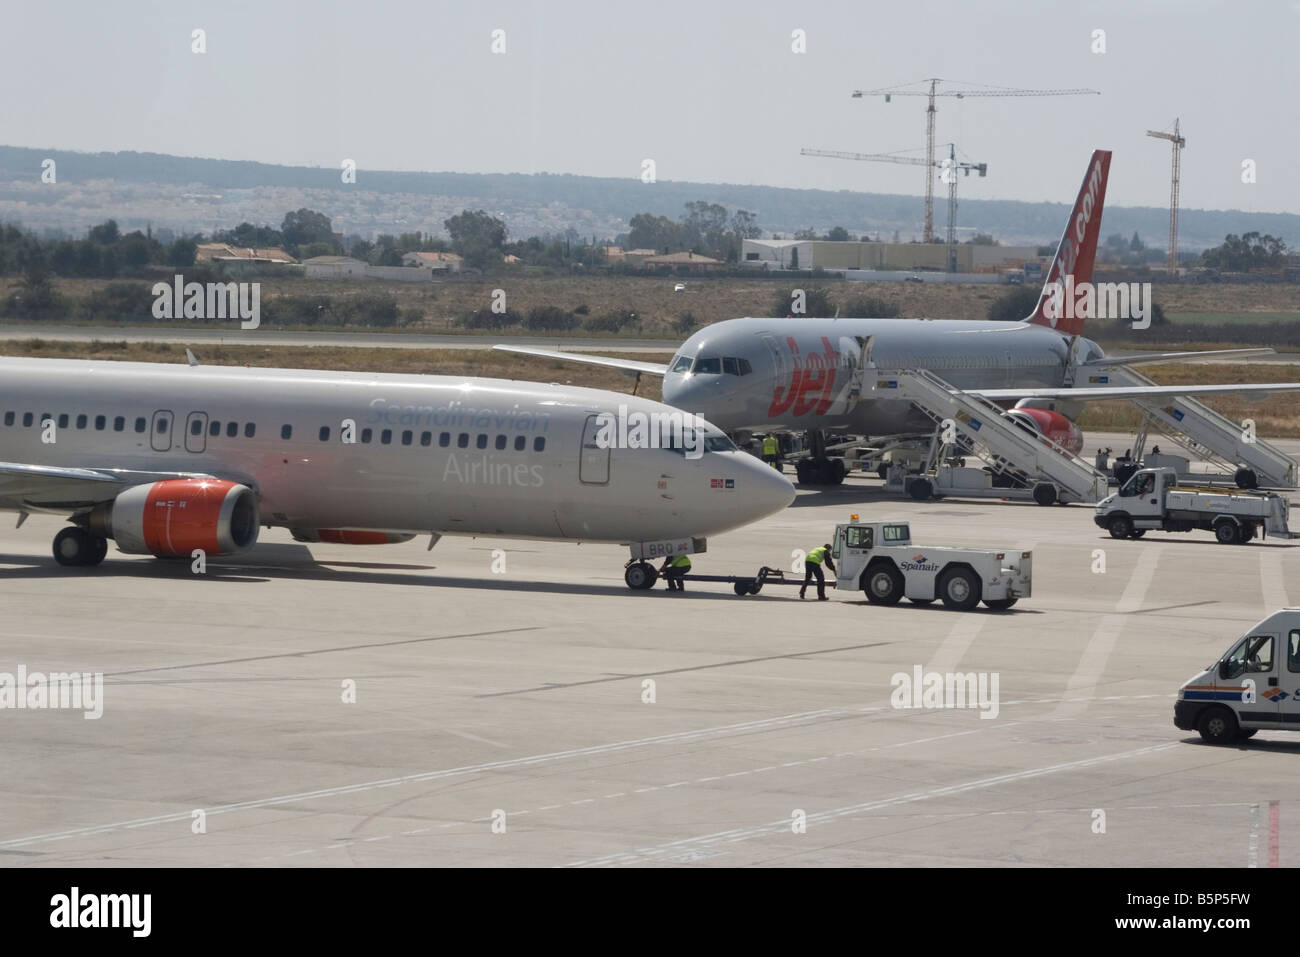 Ground Crew Working on a Scandinavian Airlines Plane and a Jet2 com Plane on the tarmac of Alicante Airport Spain - Stock Image